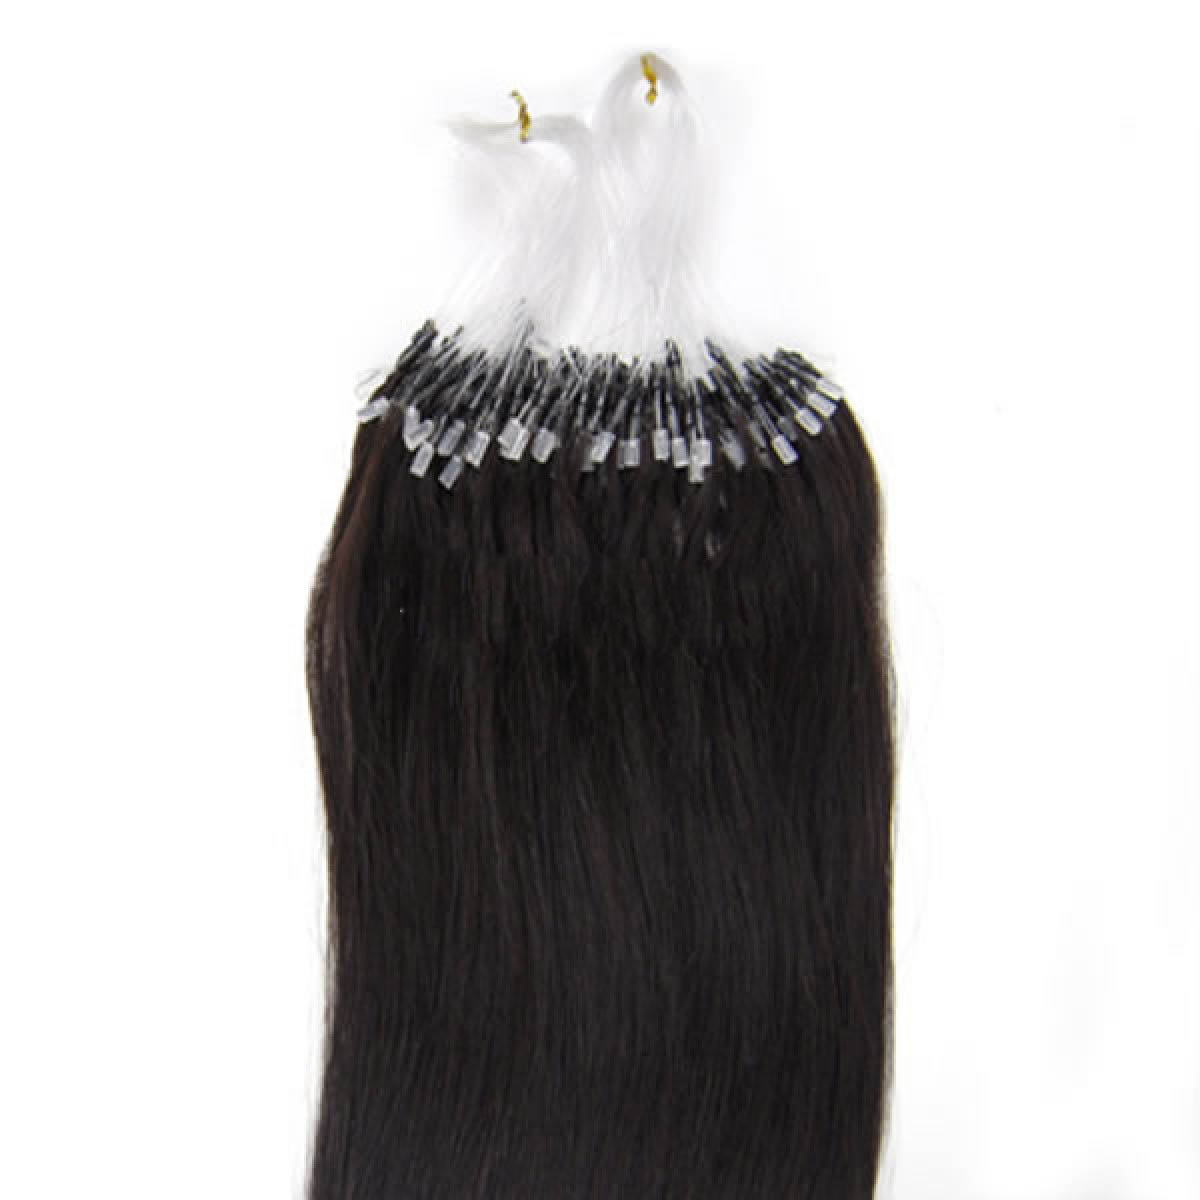 22 Human Hair Extensions 39